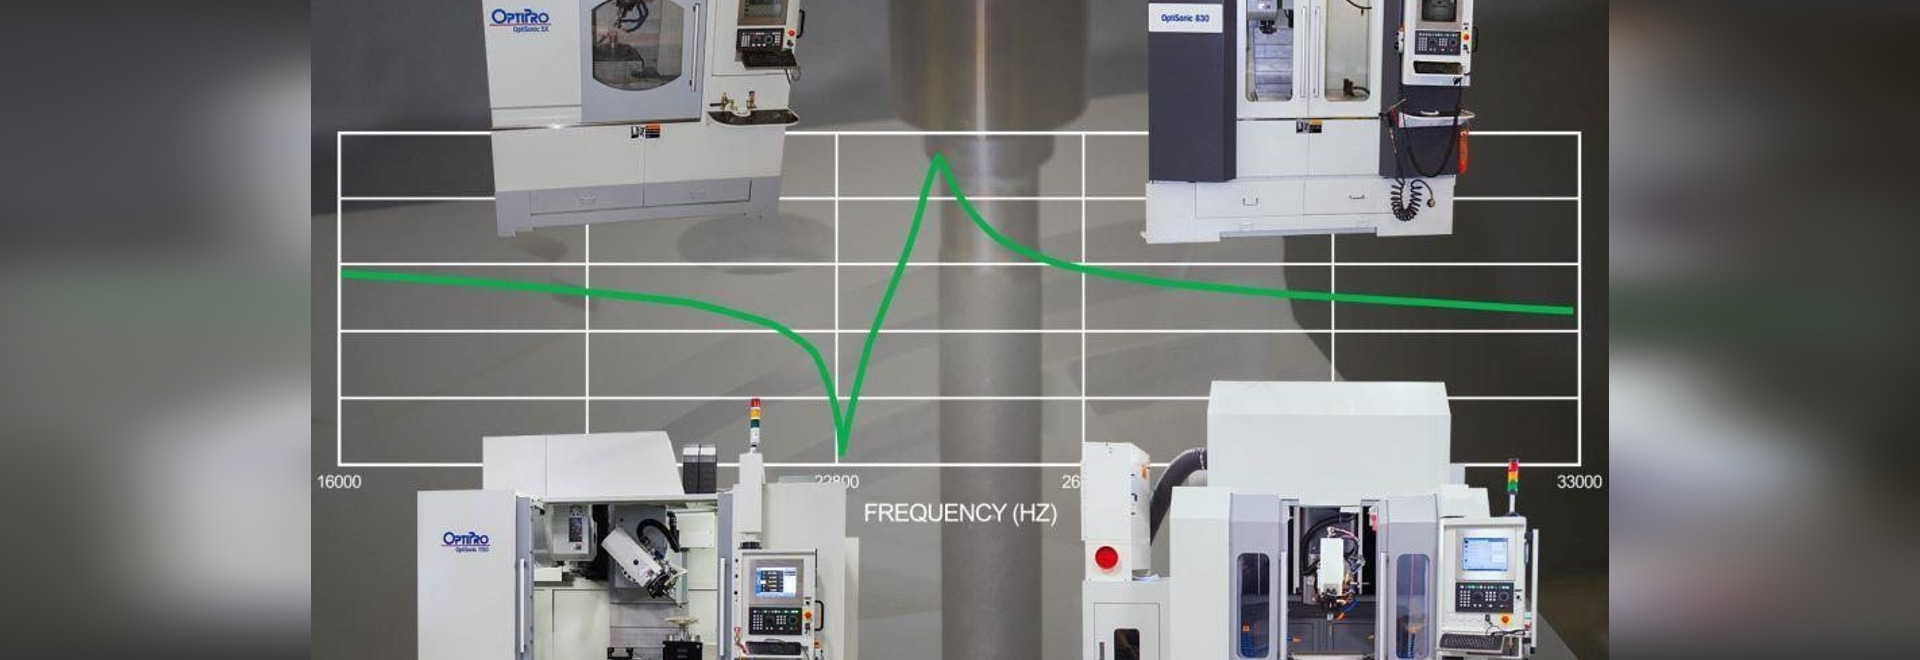 Ultrasonic Machining Center Performs Efficient Glass, Ceramic Work